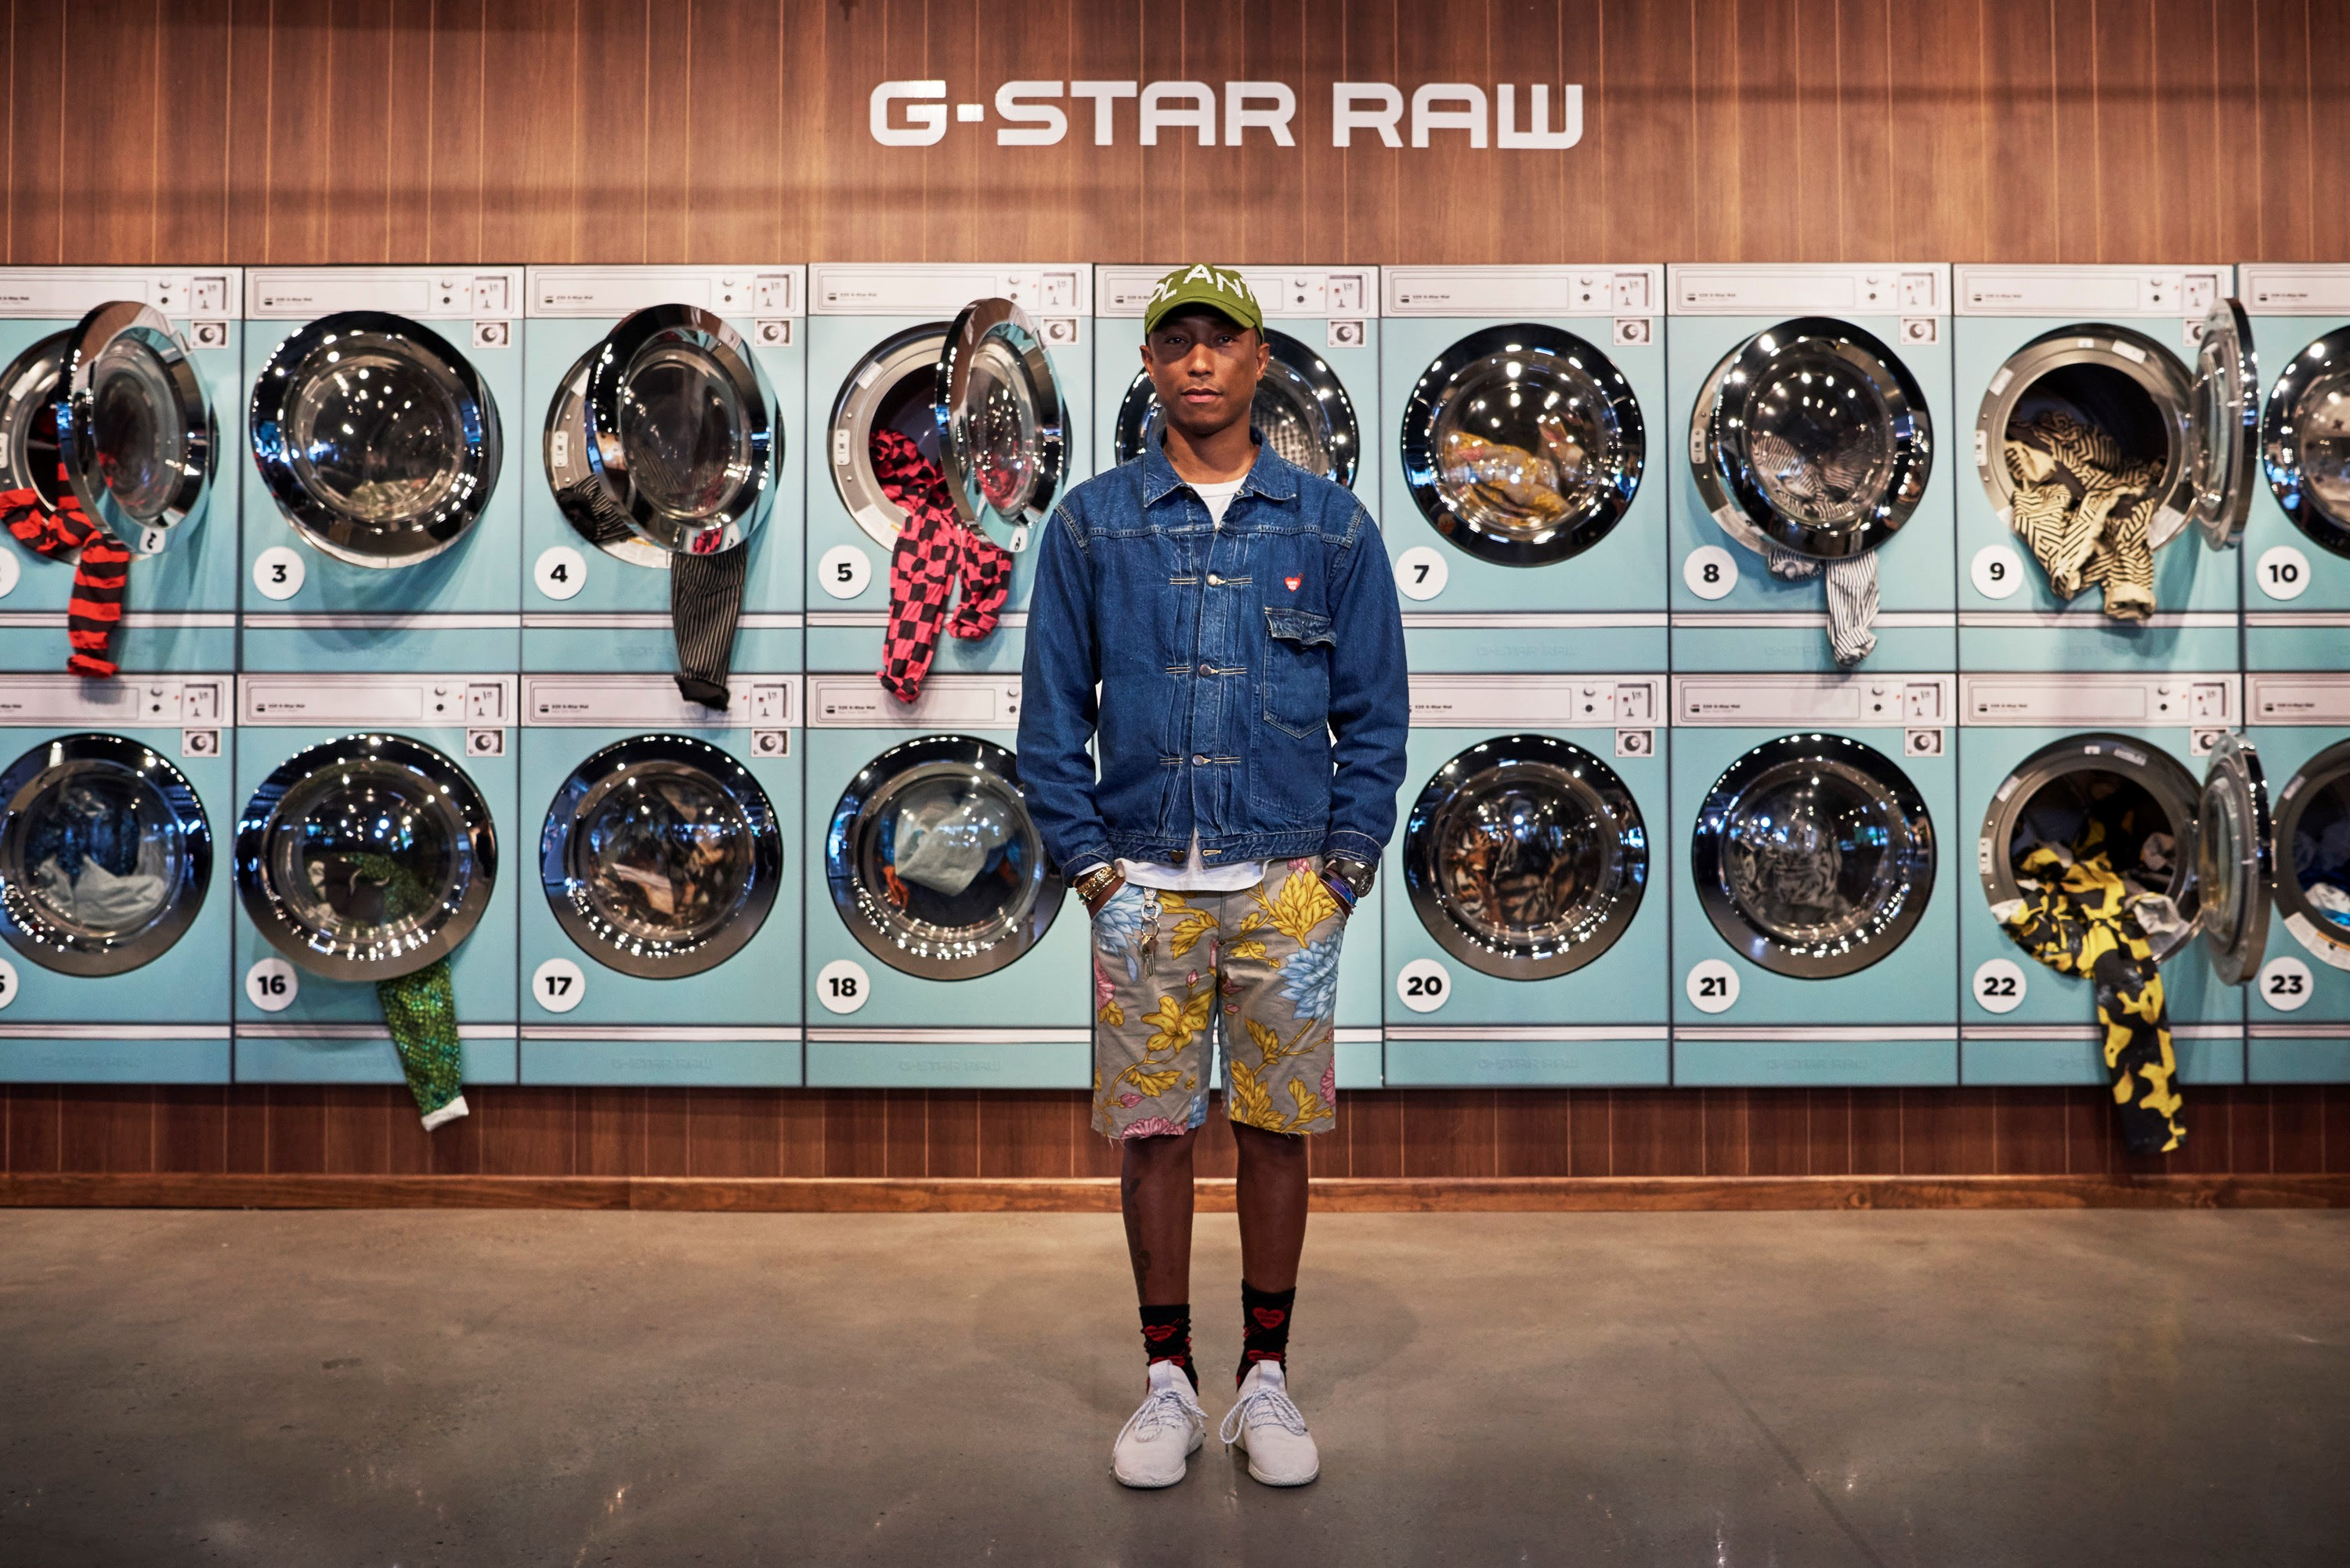 72ddf1c843f4 G-Star RAW and Pharrell Williams launch second edition of the G-Star Elwood  X25. Challenging the standards of style